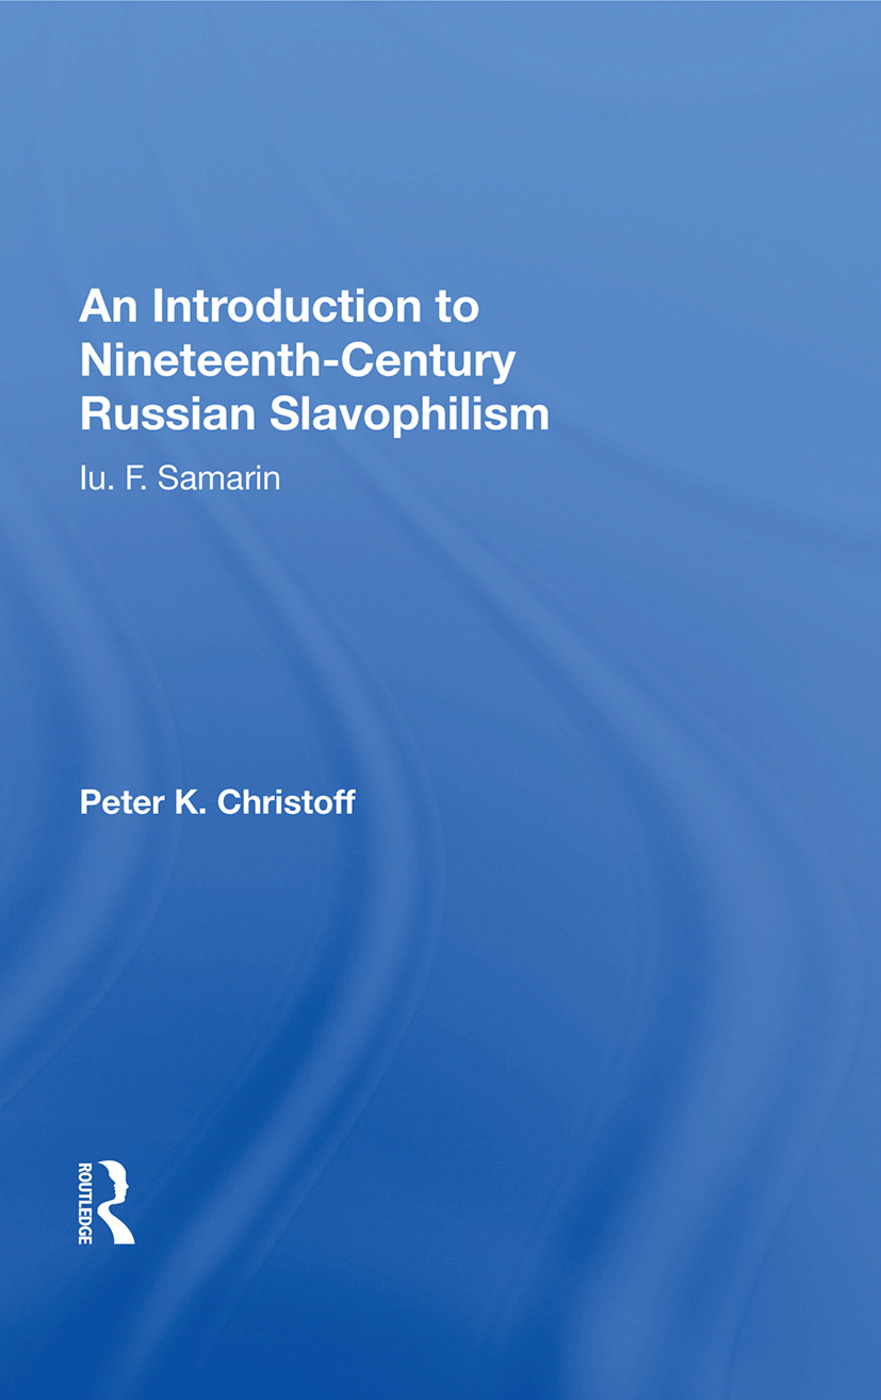 An Introduction To Nineteenth-century Russian Slavophilism: Iu. F. Samarin, 1st Edition (Paperback) book cover